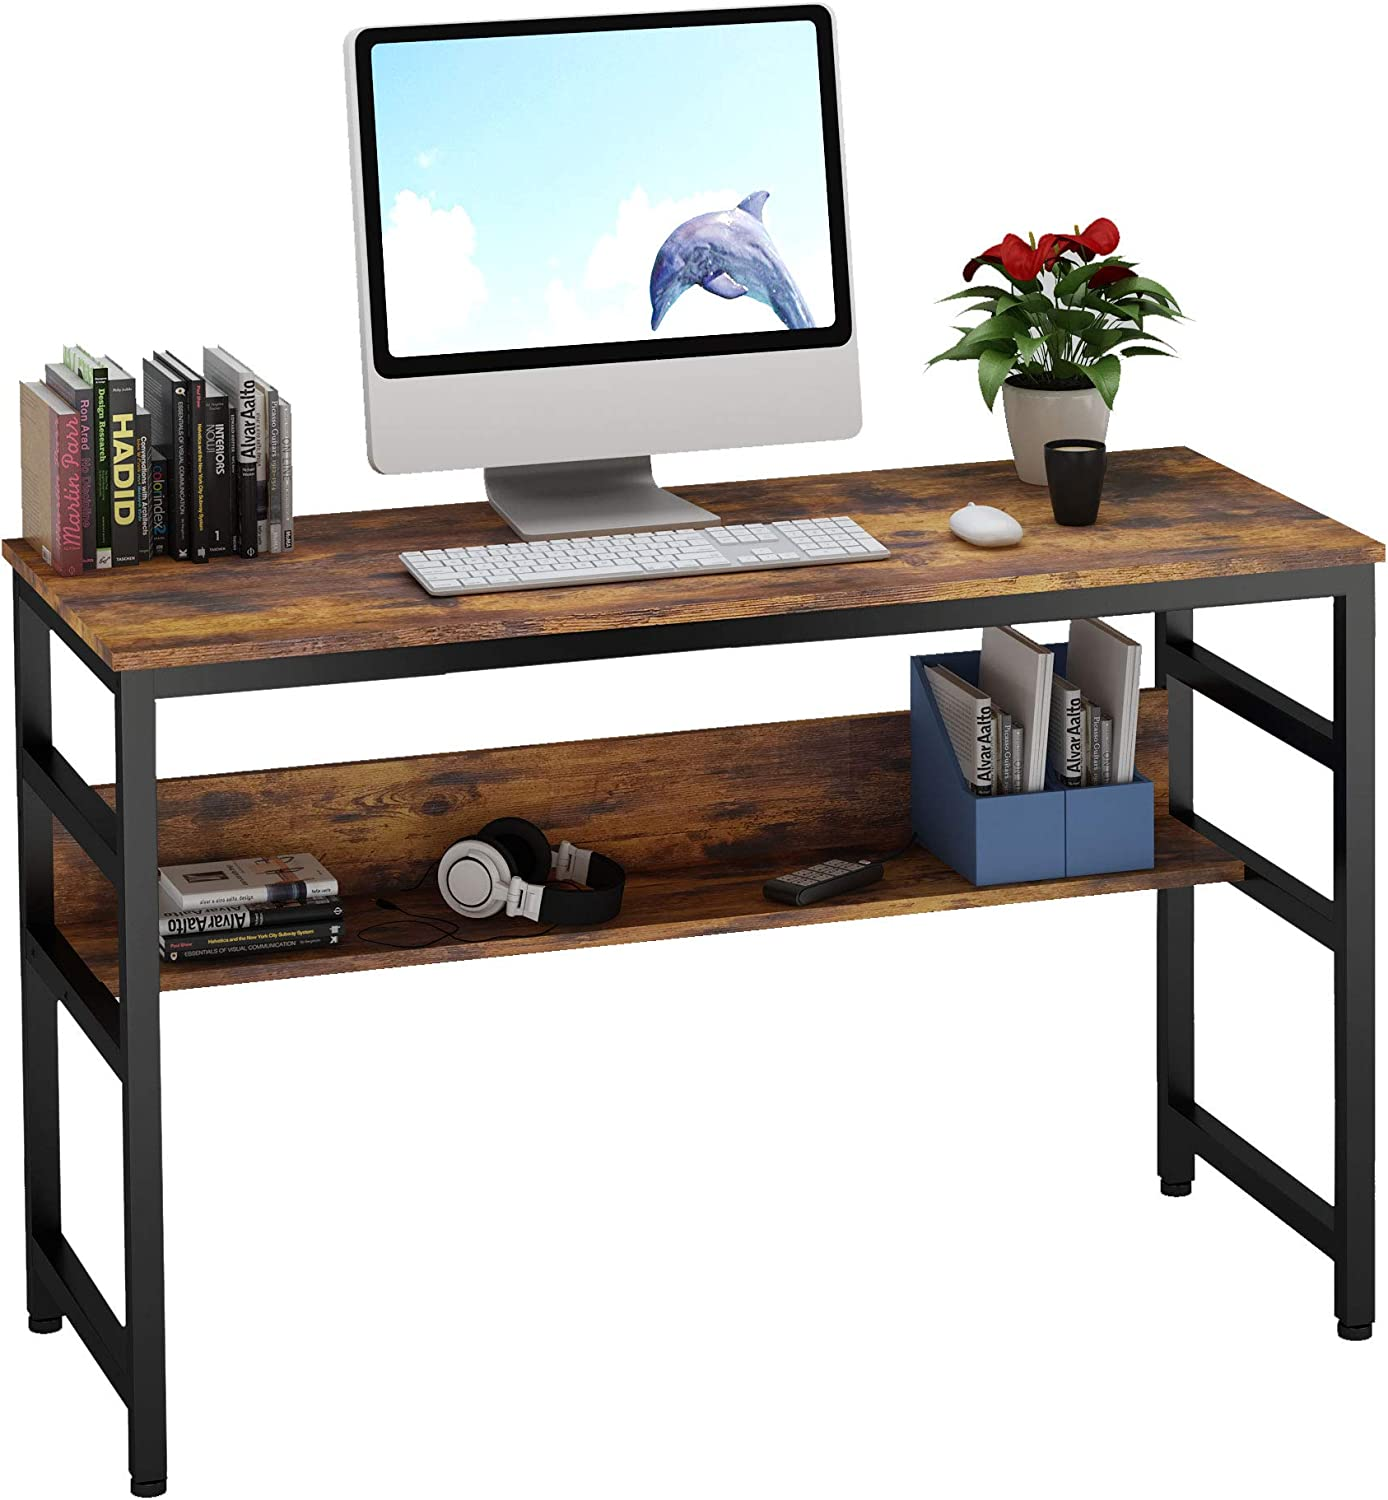 "Ruitta 47"" Writing Computer Desk, Home Office Desk with Bookshelf, Writing Desk Study Writing Table, Stable Wood and Metal Frame, PC Notebook Laptop Table Study Desk (47"", Rustic Brown)"